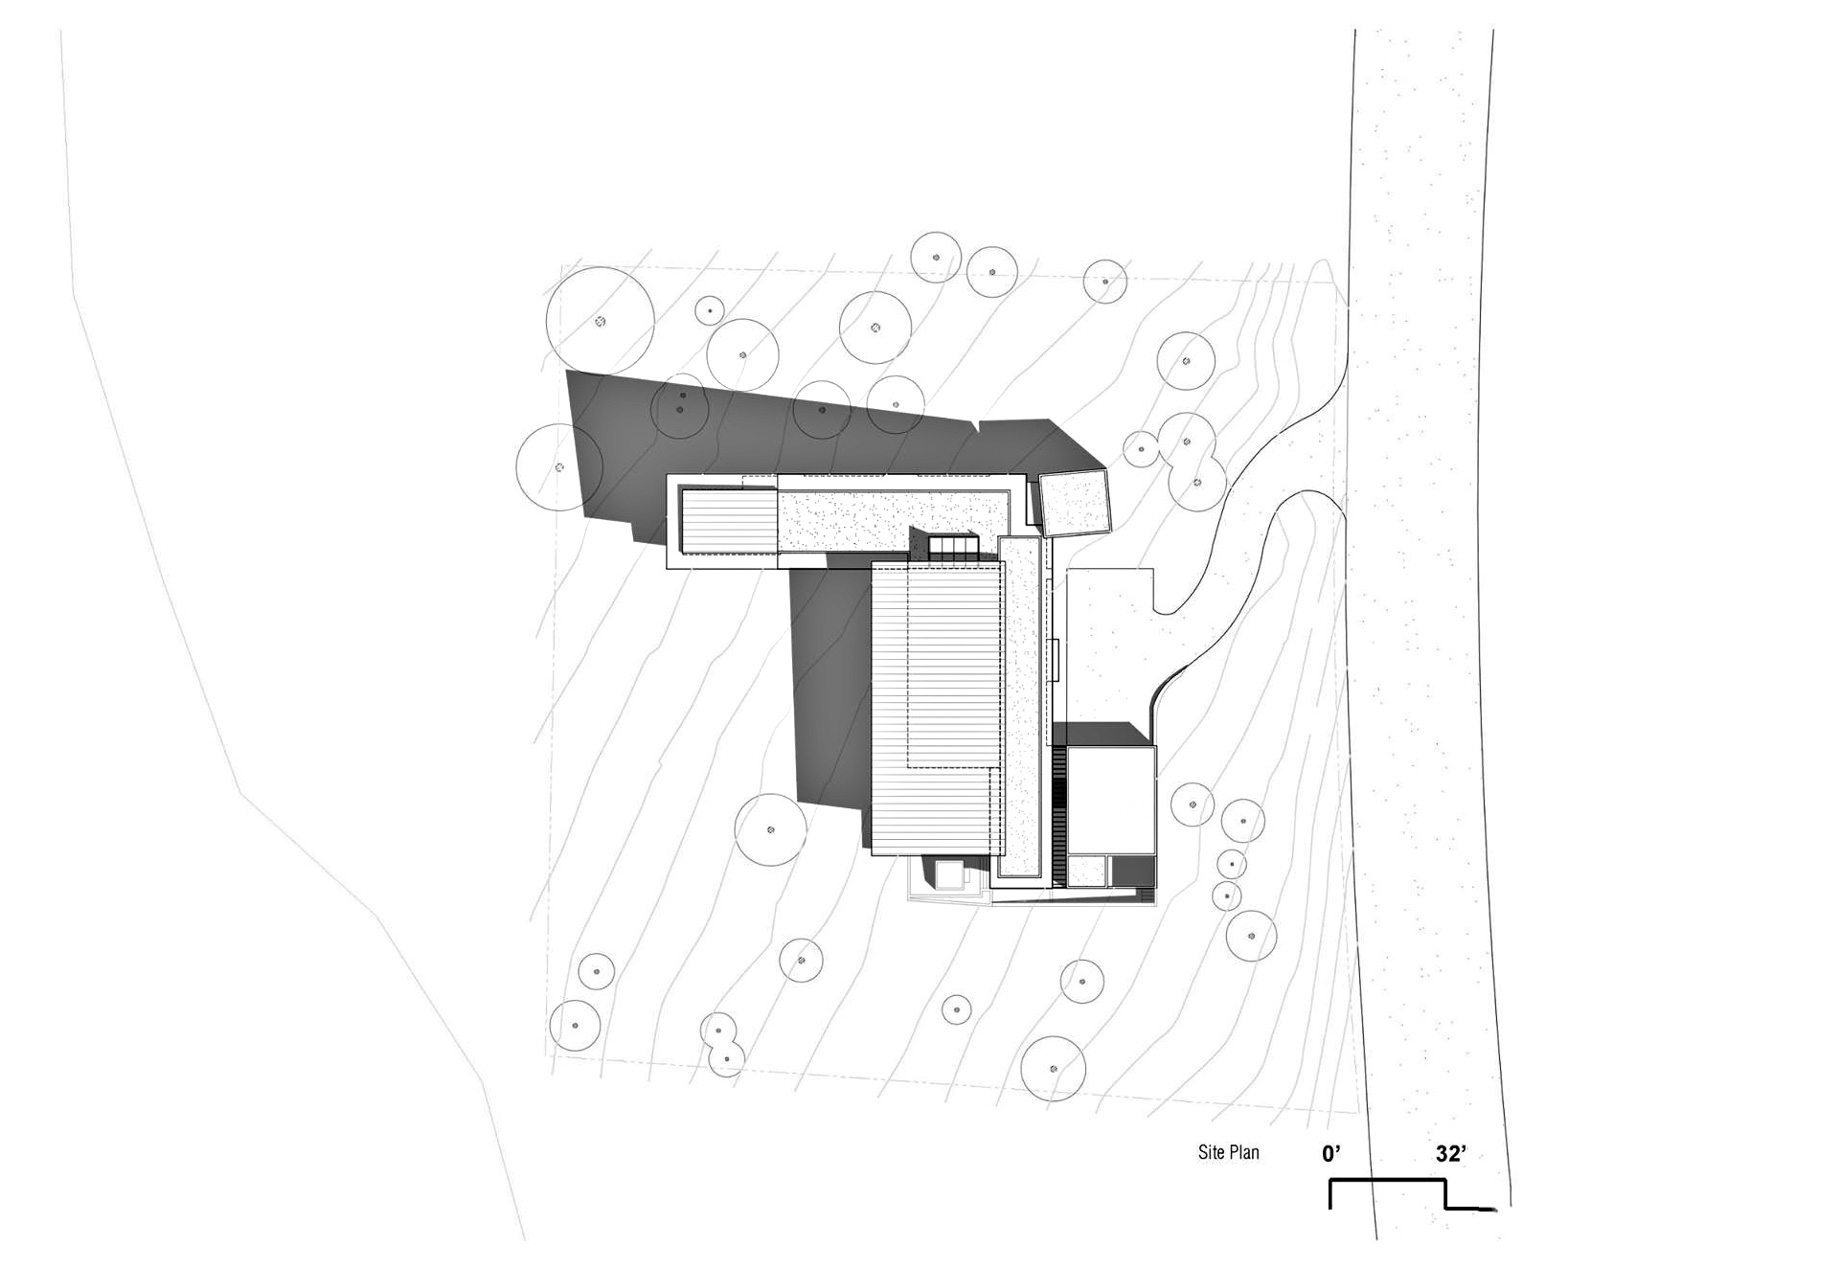 Site Plan - Martis Camp 479 Luxury Residence - Truckee, CA, USA